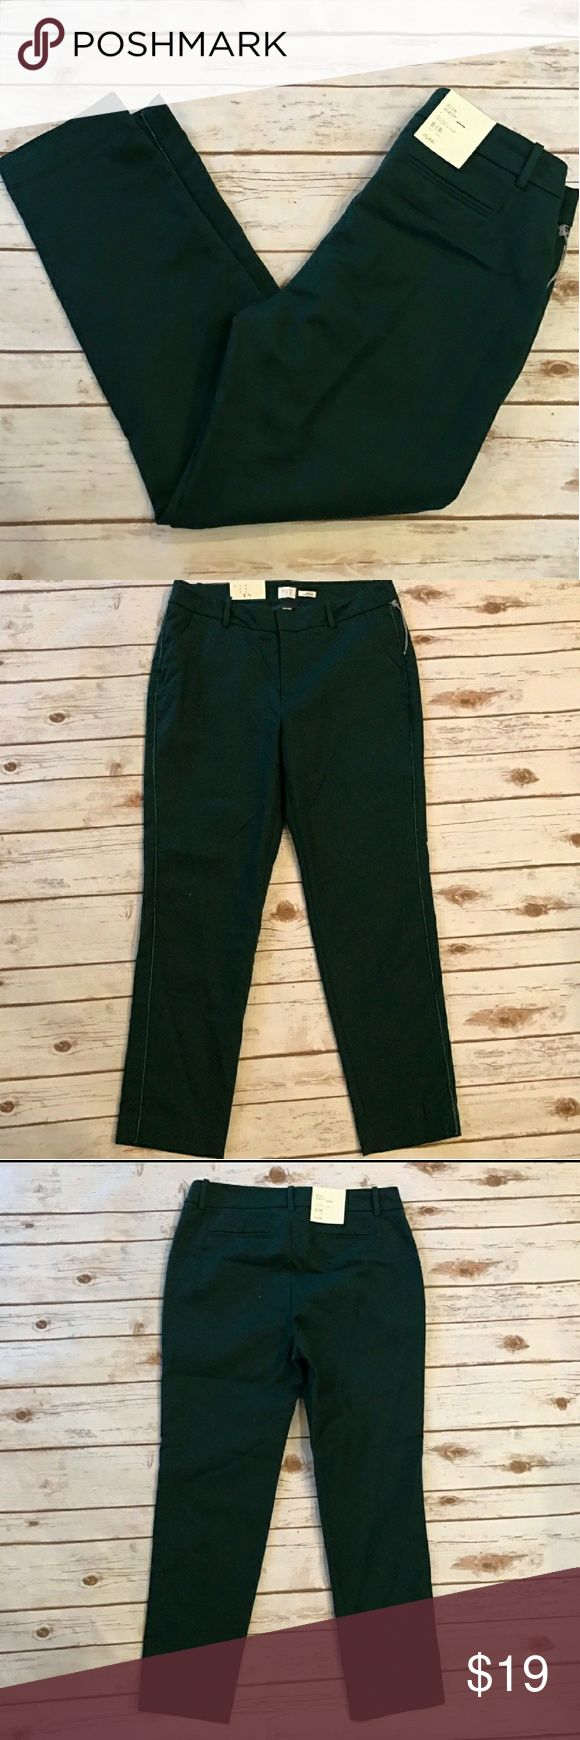 Hunter Green Skinny Capris NWT NWT Target Brand A New Day Skinny Capri's Size 10. Great addition to a professional wardrobe when paires with a button down blazer and heels or casual as shown in picture with flats. Pants